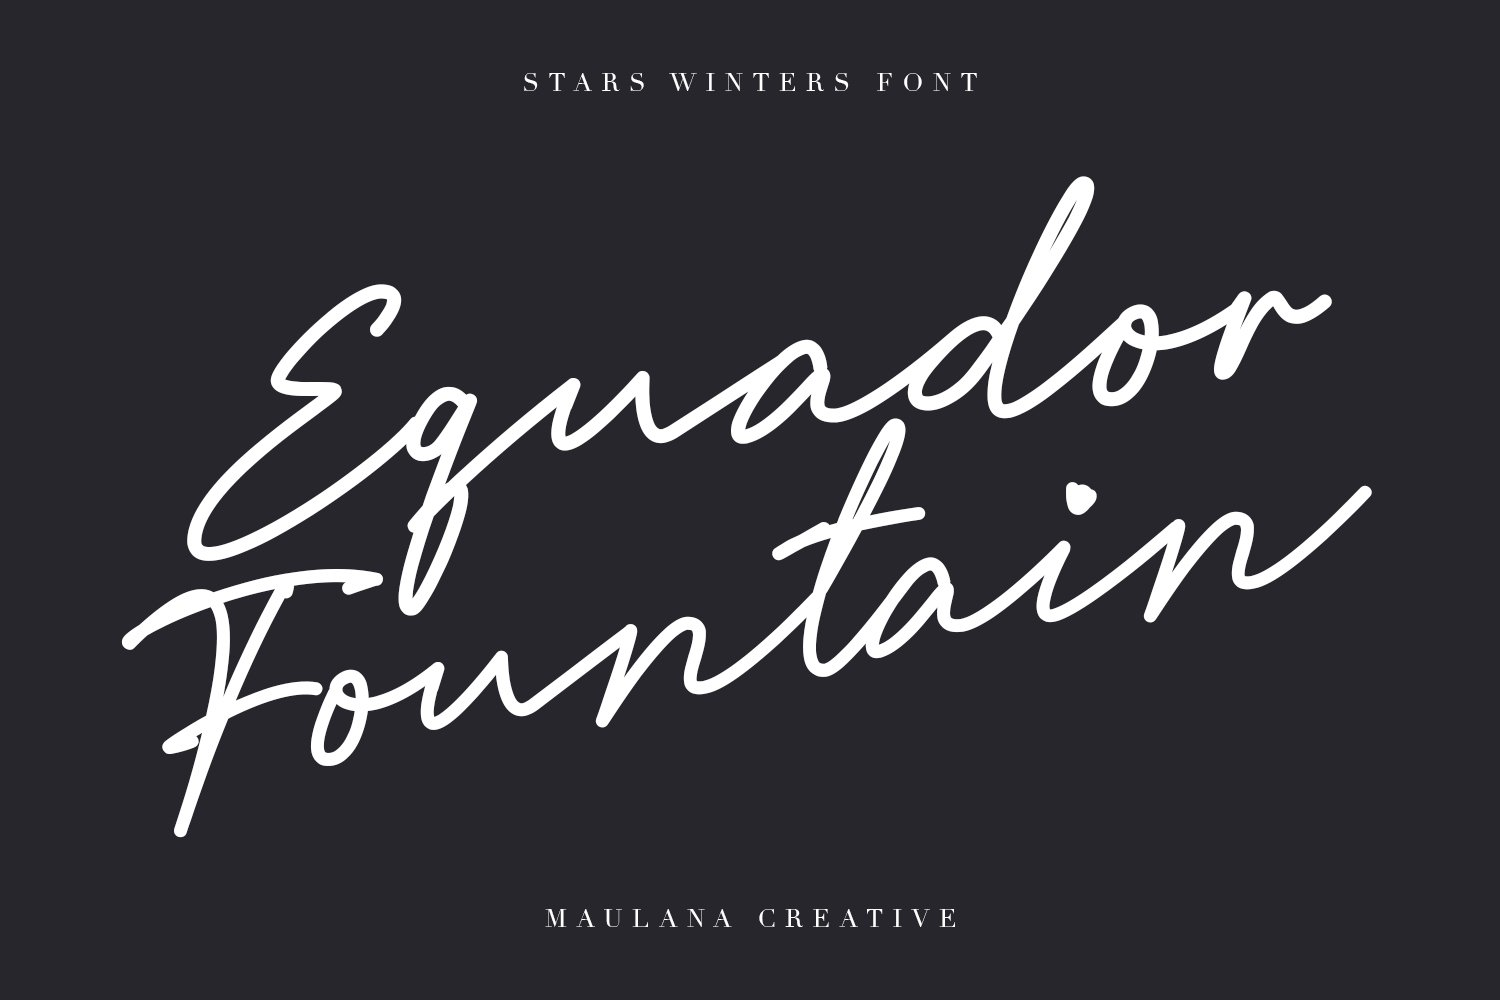 Stars Winters Typeface example image 4